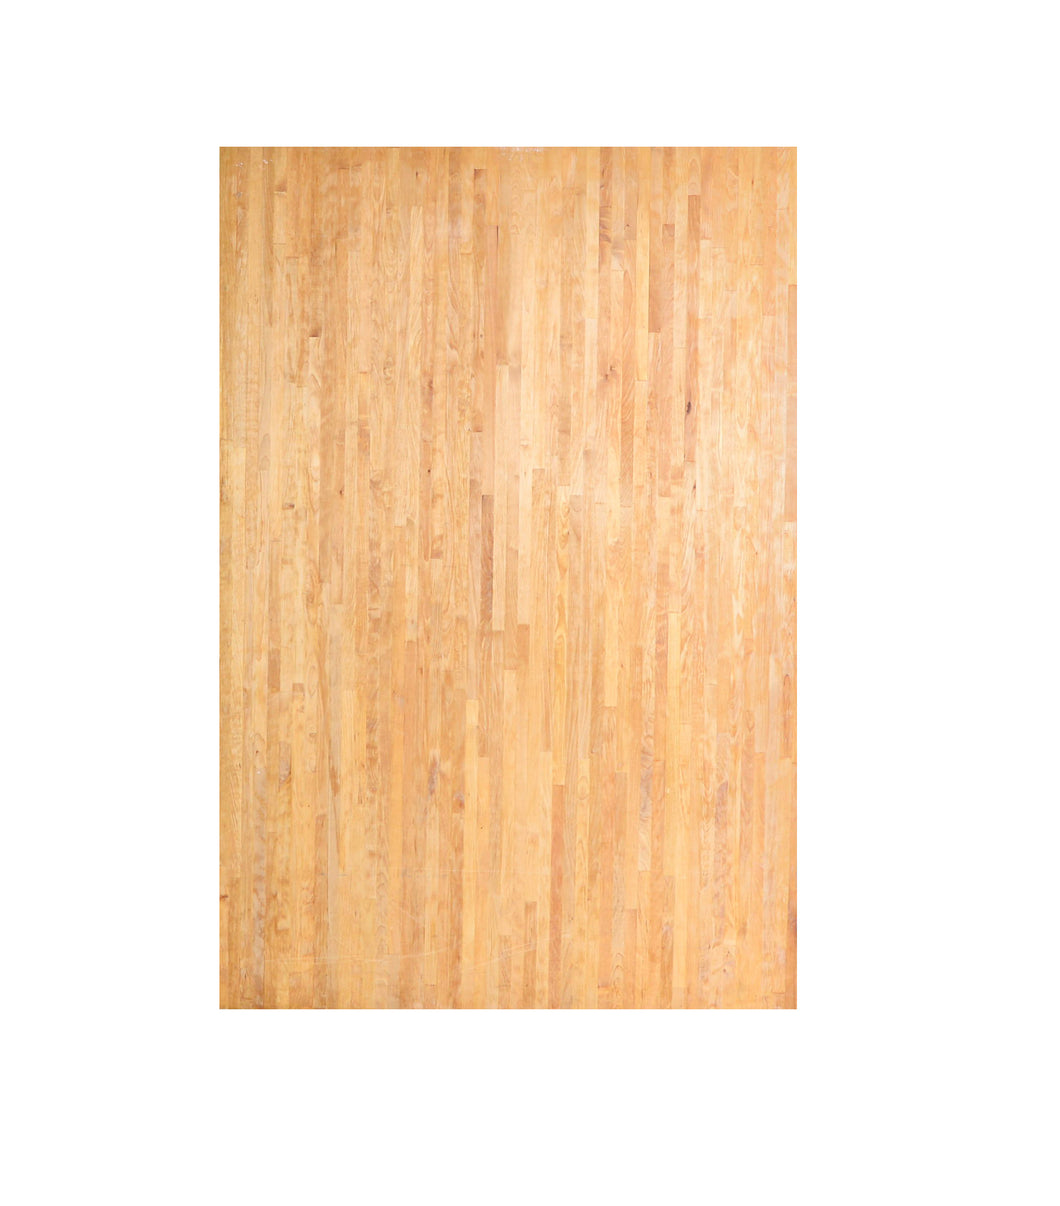 Lg Two-Toned Light Natural Wood Butcher Block